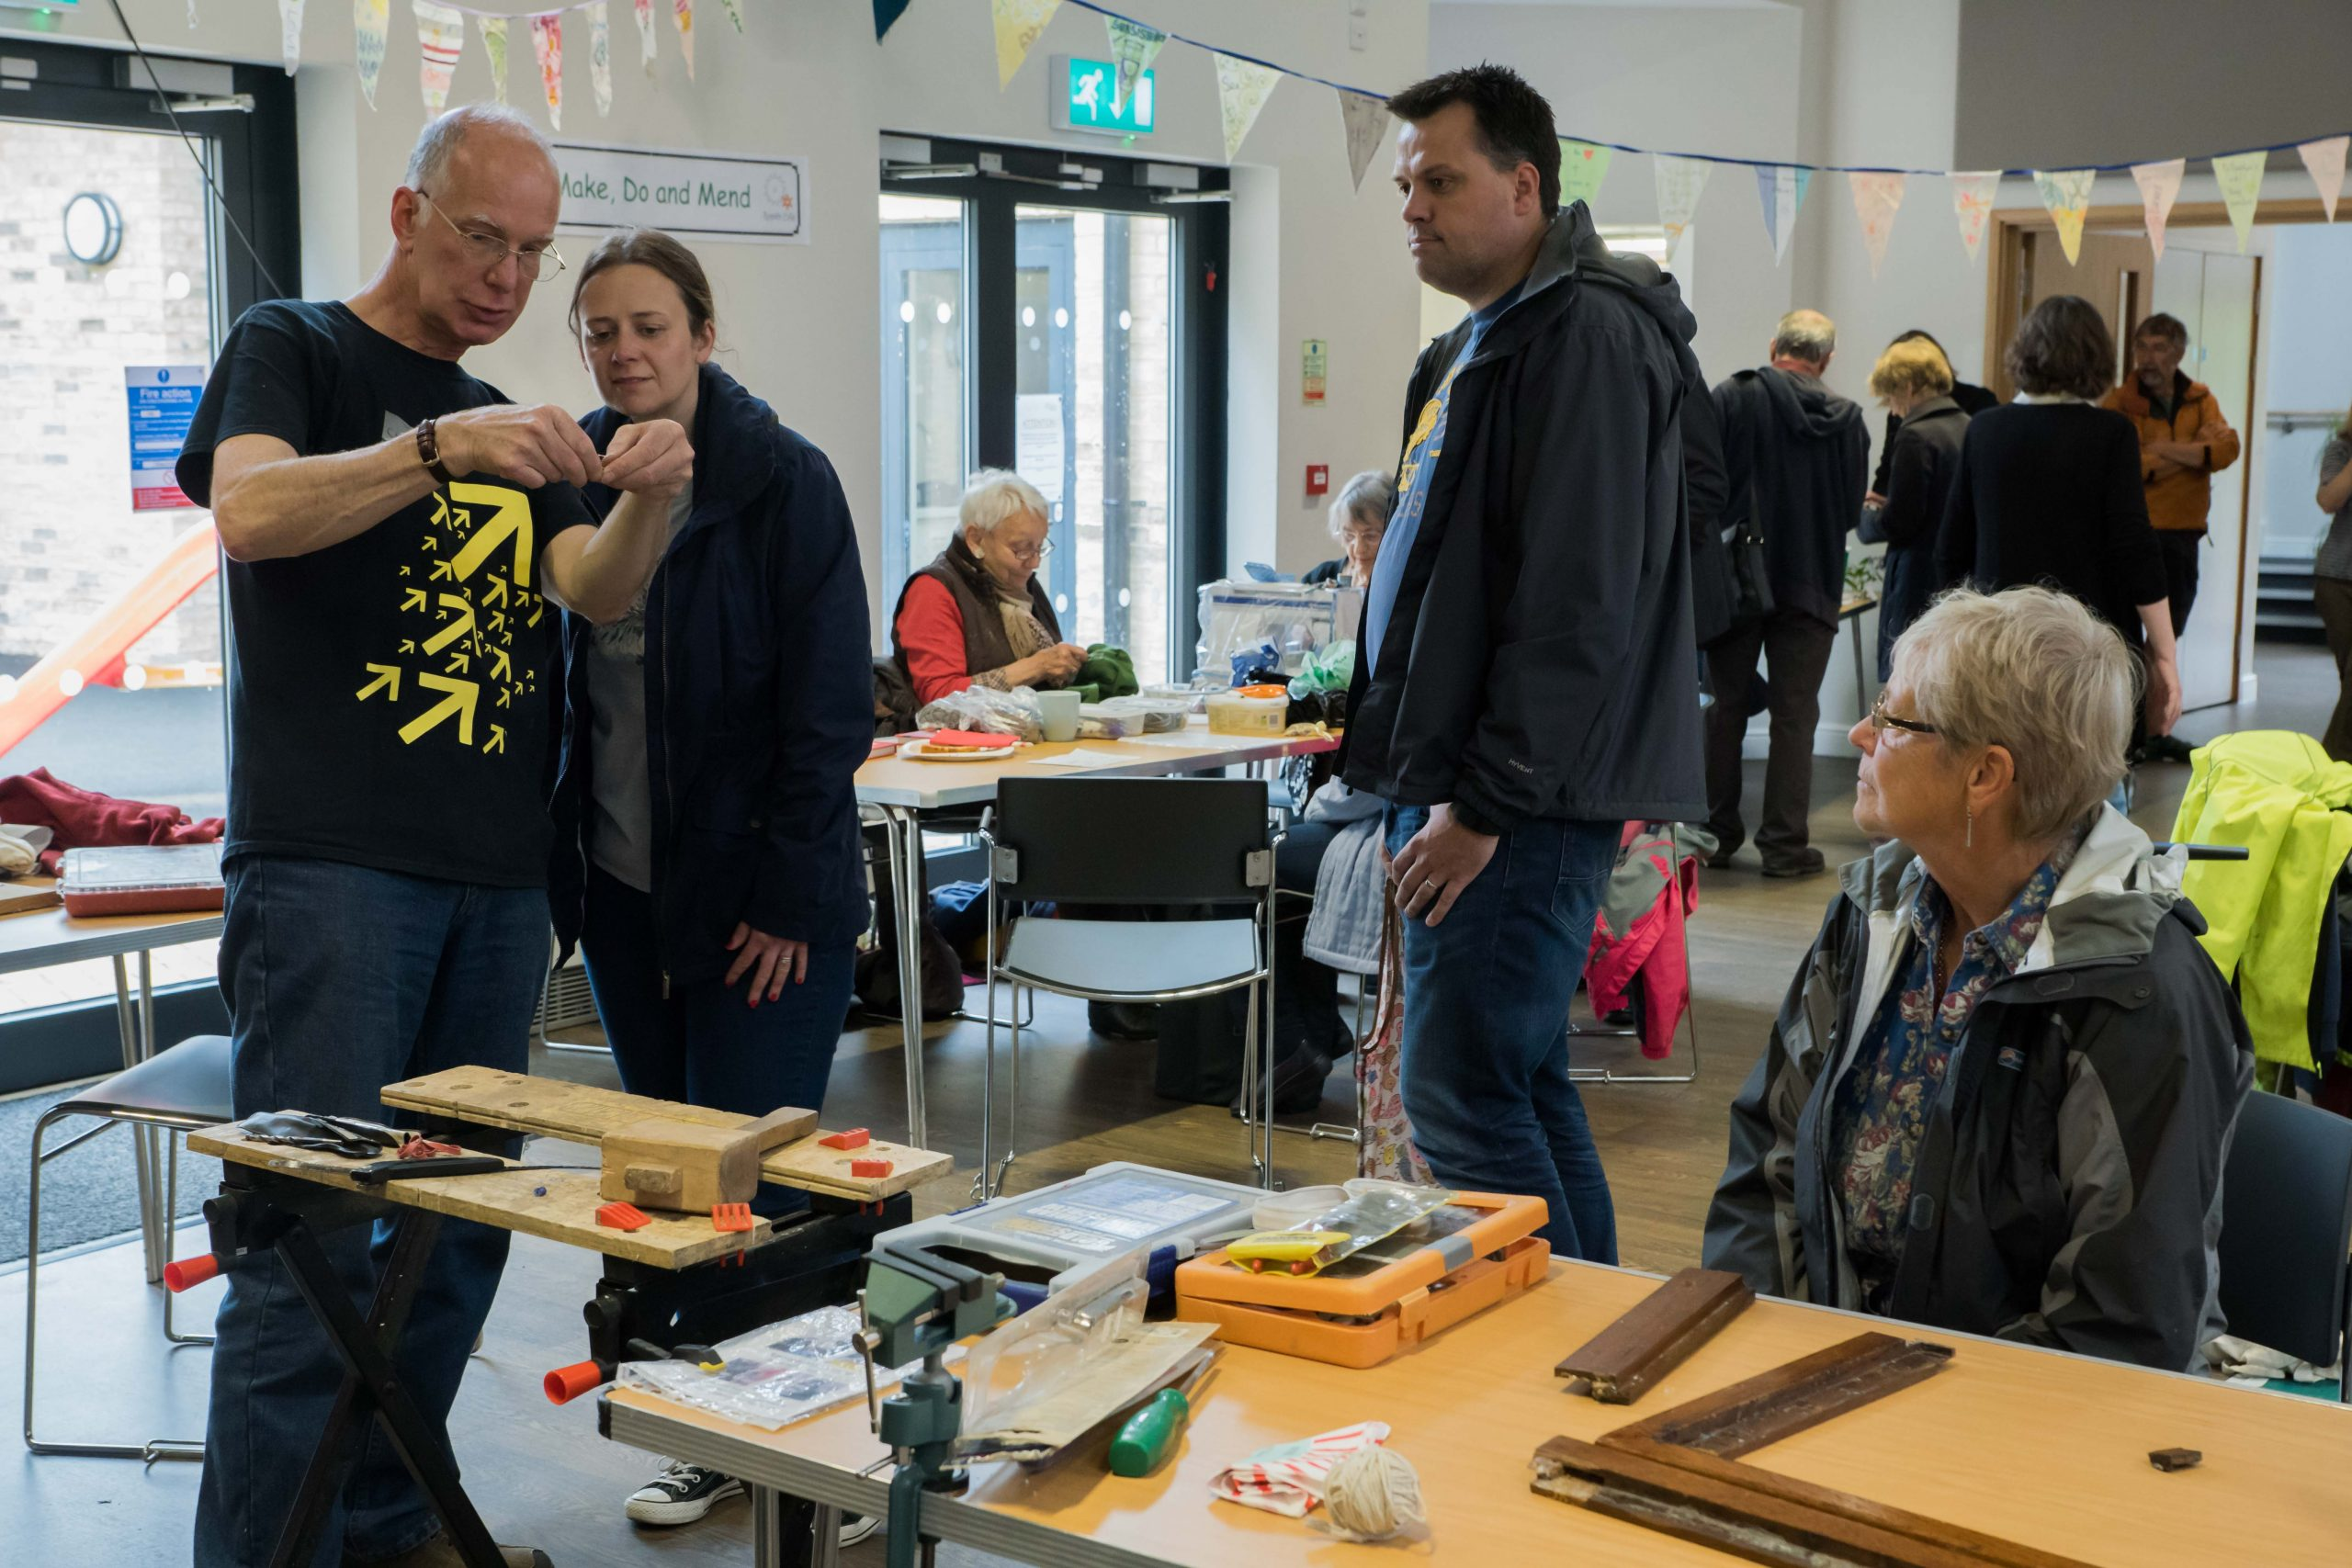 How to organise a Repair Café in your community